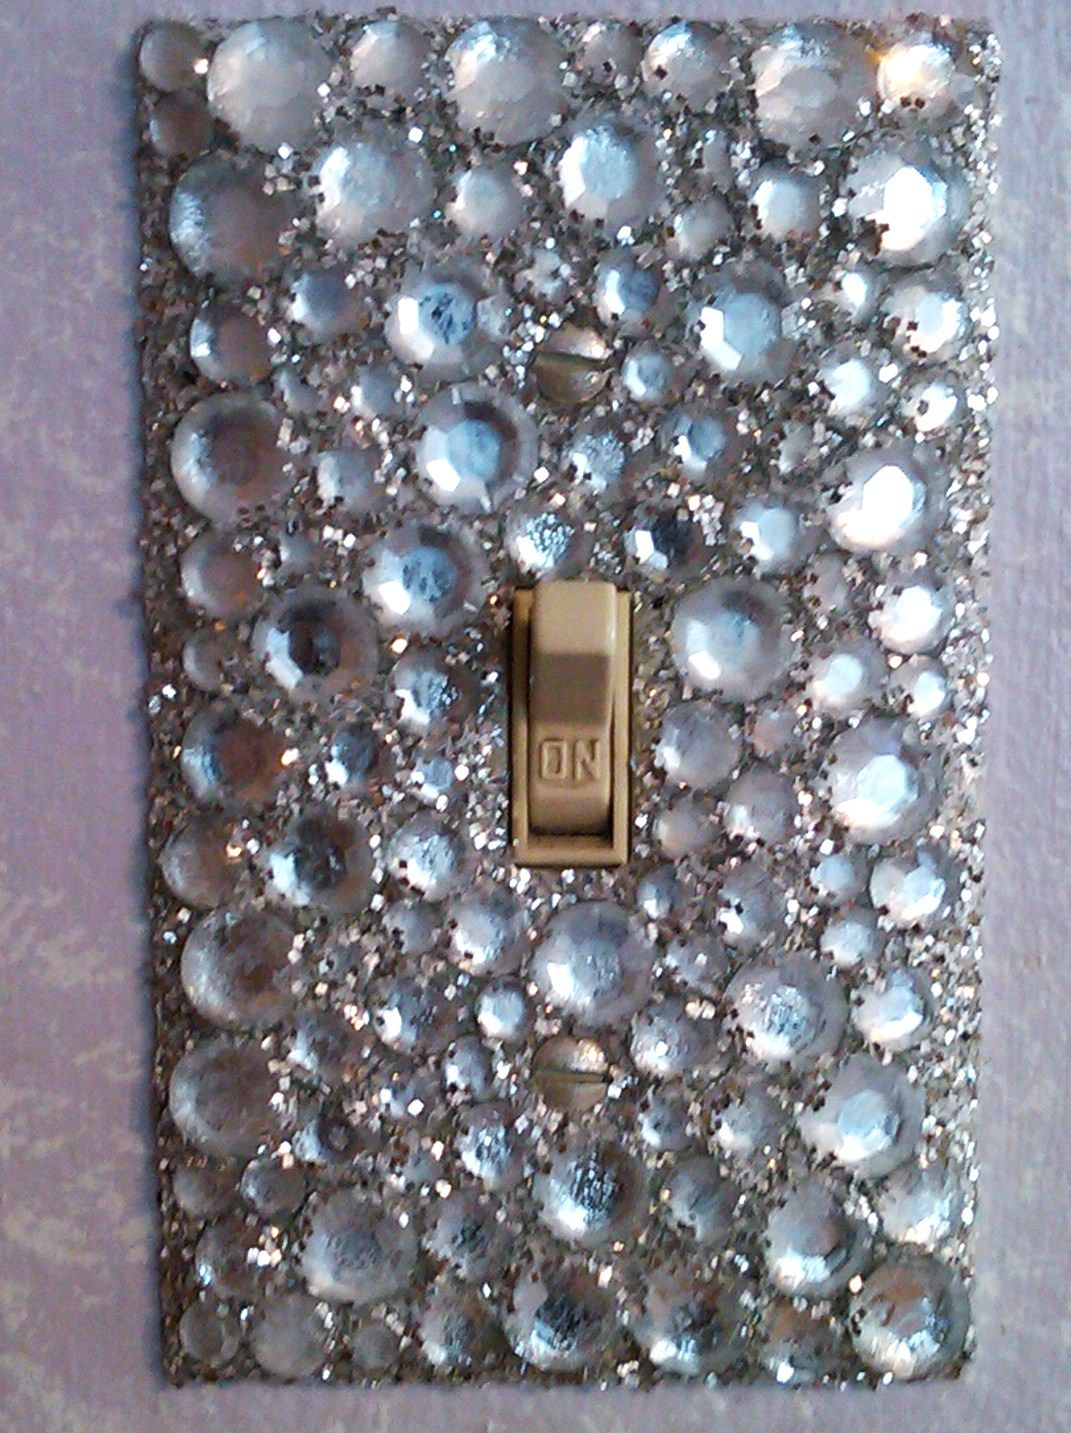 Bejeweled light plate.